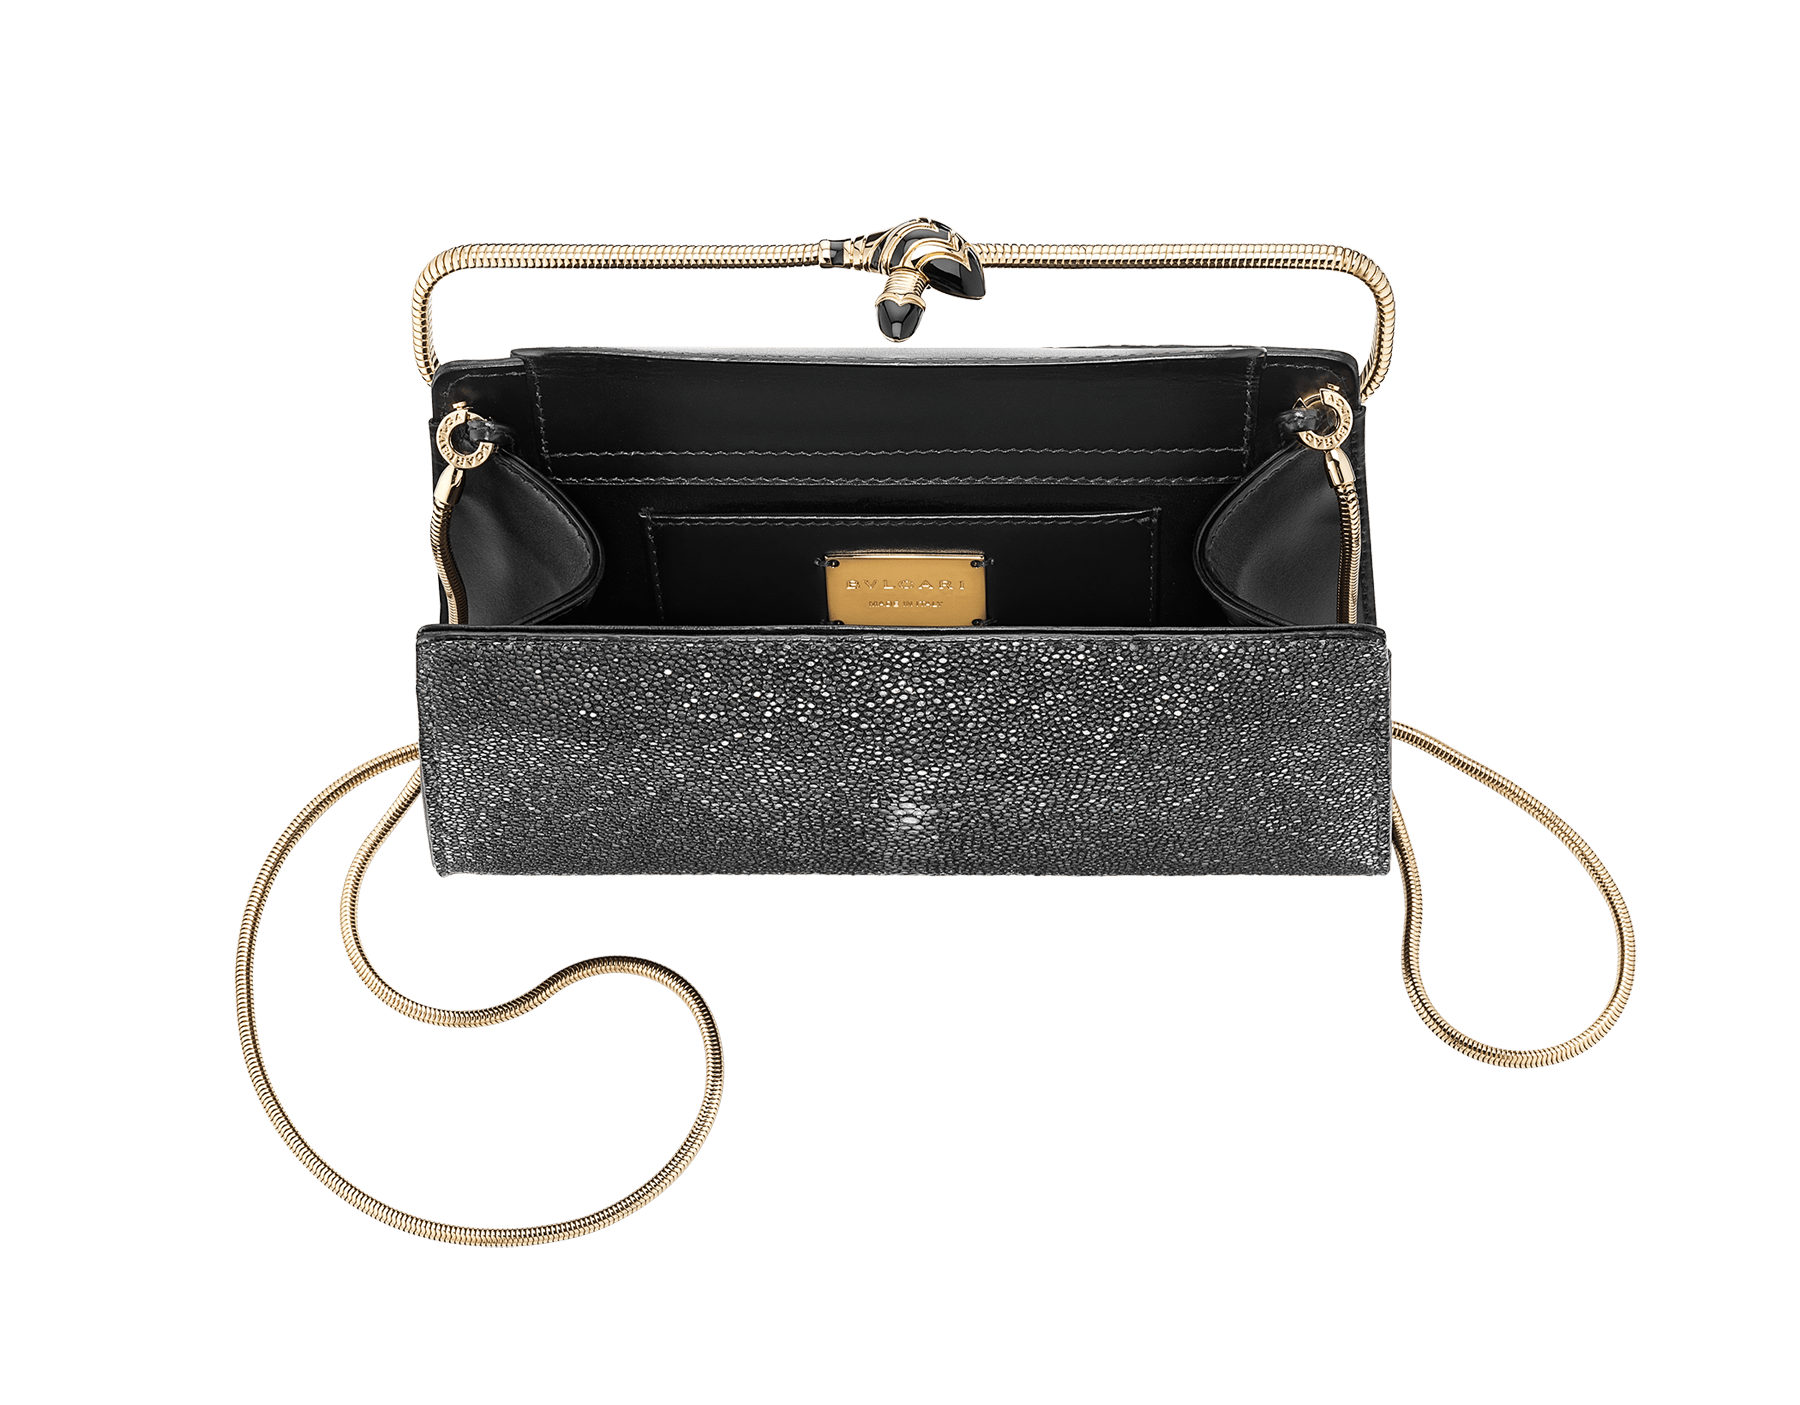 Serpenti Tubogas clutch in black galuchat skin and calf leather. Brass light rose gold plated snake body-shaped frame closure with black enamel. 526-001-0671S image 4